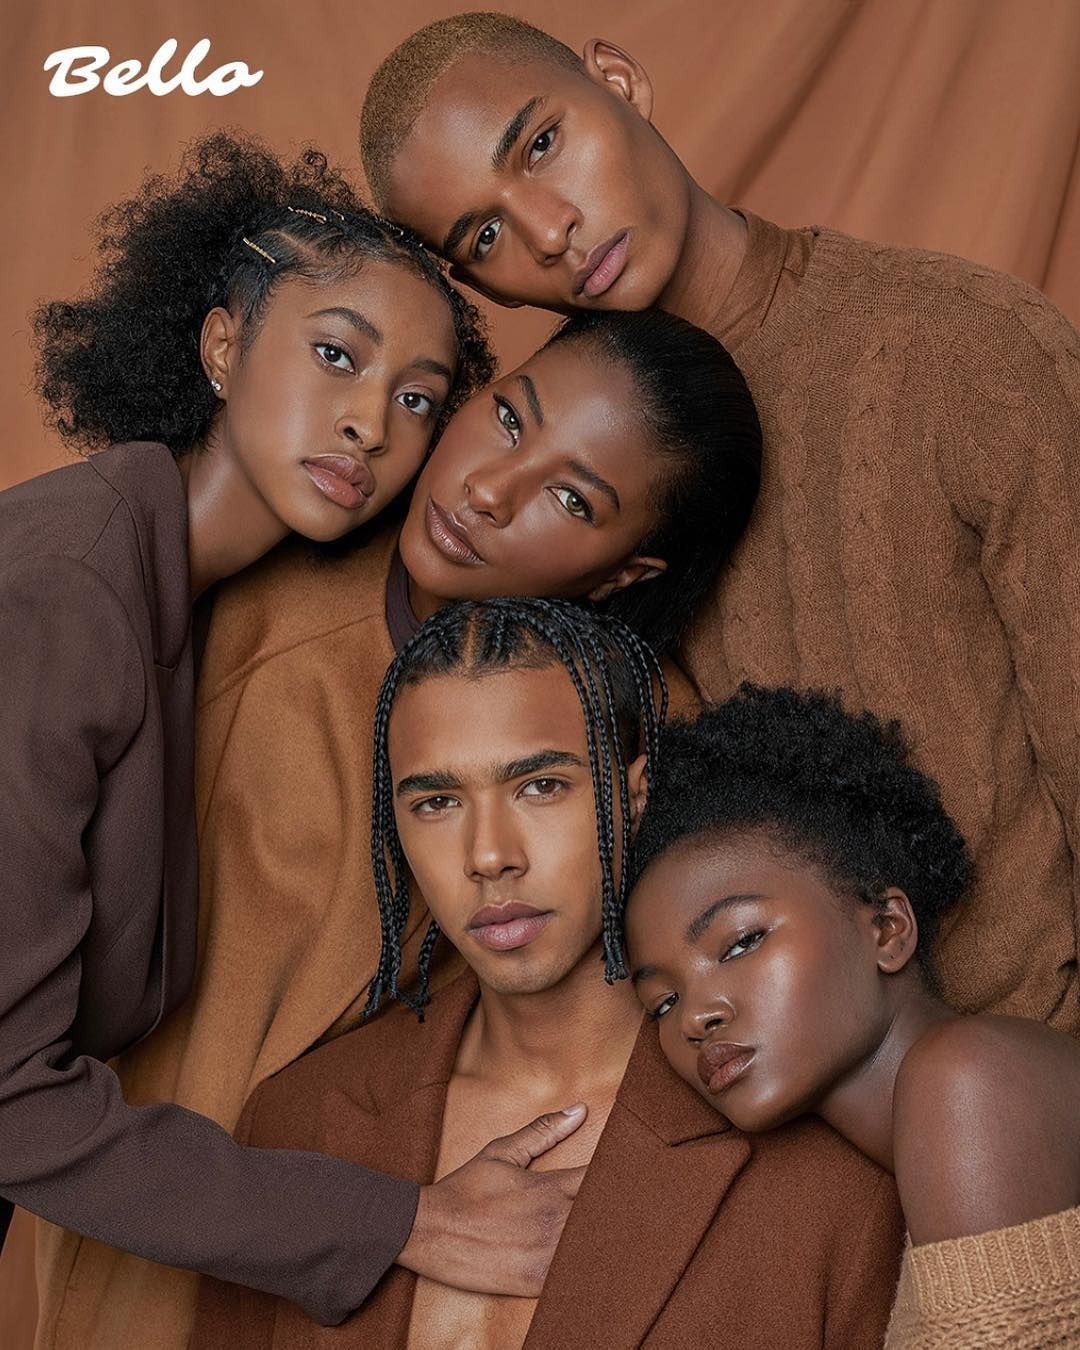 "James Butler on Instagram """"Black Magic"" editorial out now featured in @bellomag! Black is beautiful this month and every other month as well   Thank you @bellomag…"" is part of Beauty shoot - 9,852 Likes, 188 Comments  James Butler (@james butler) on Instagram """"Black Magic"" editorial out now featured in @bellomag! Black is beautiful this month and every…"""